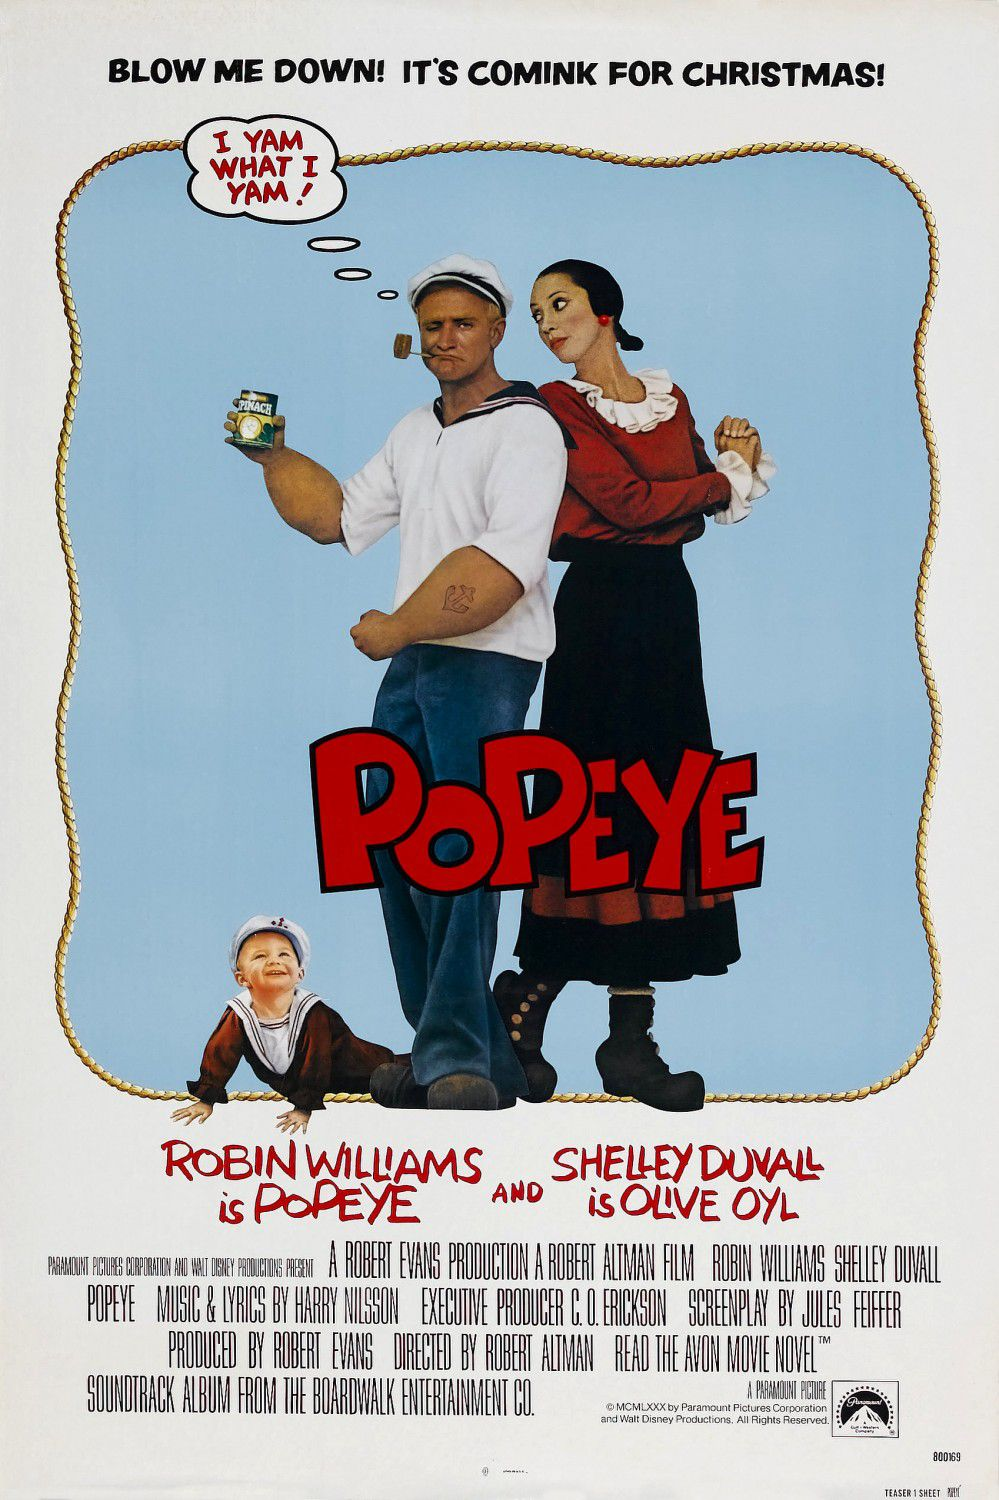 Popeye - Braccio di Ferro (1980) by Robert Altman - Robin Williams